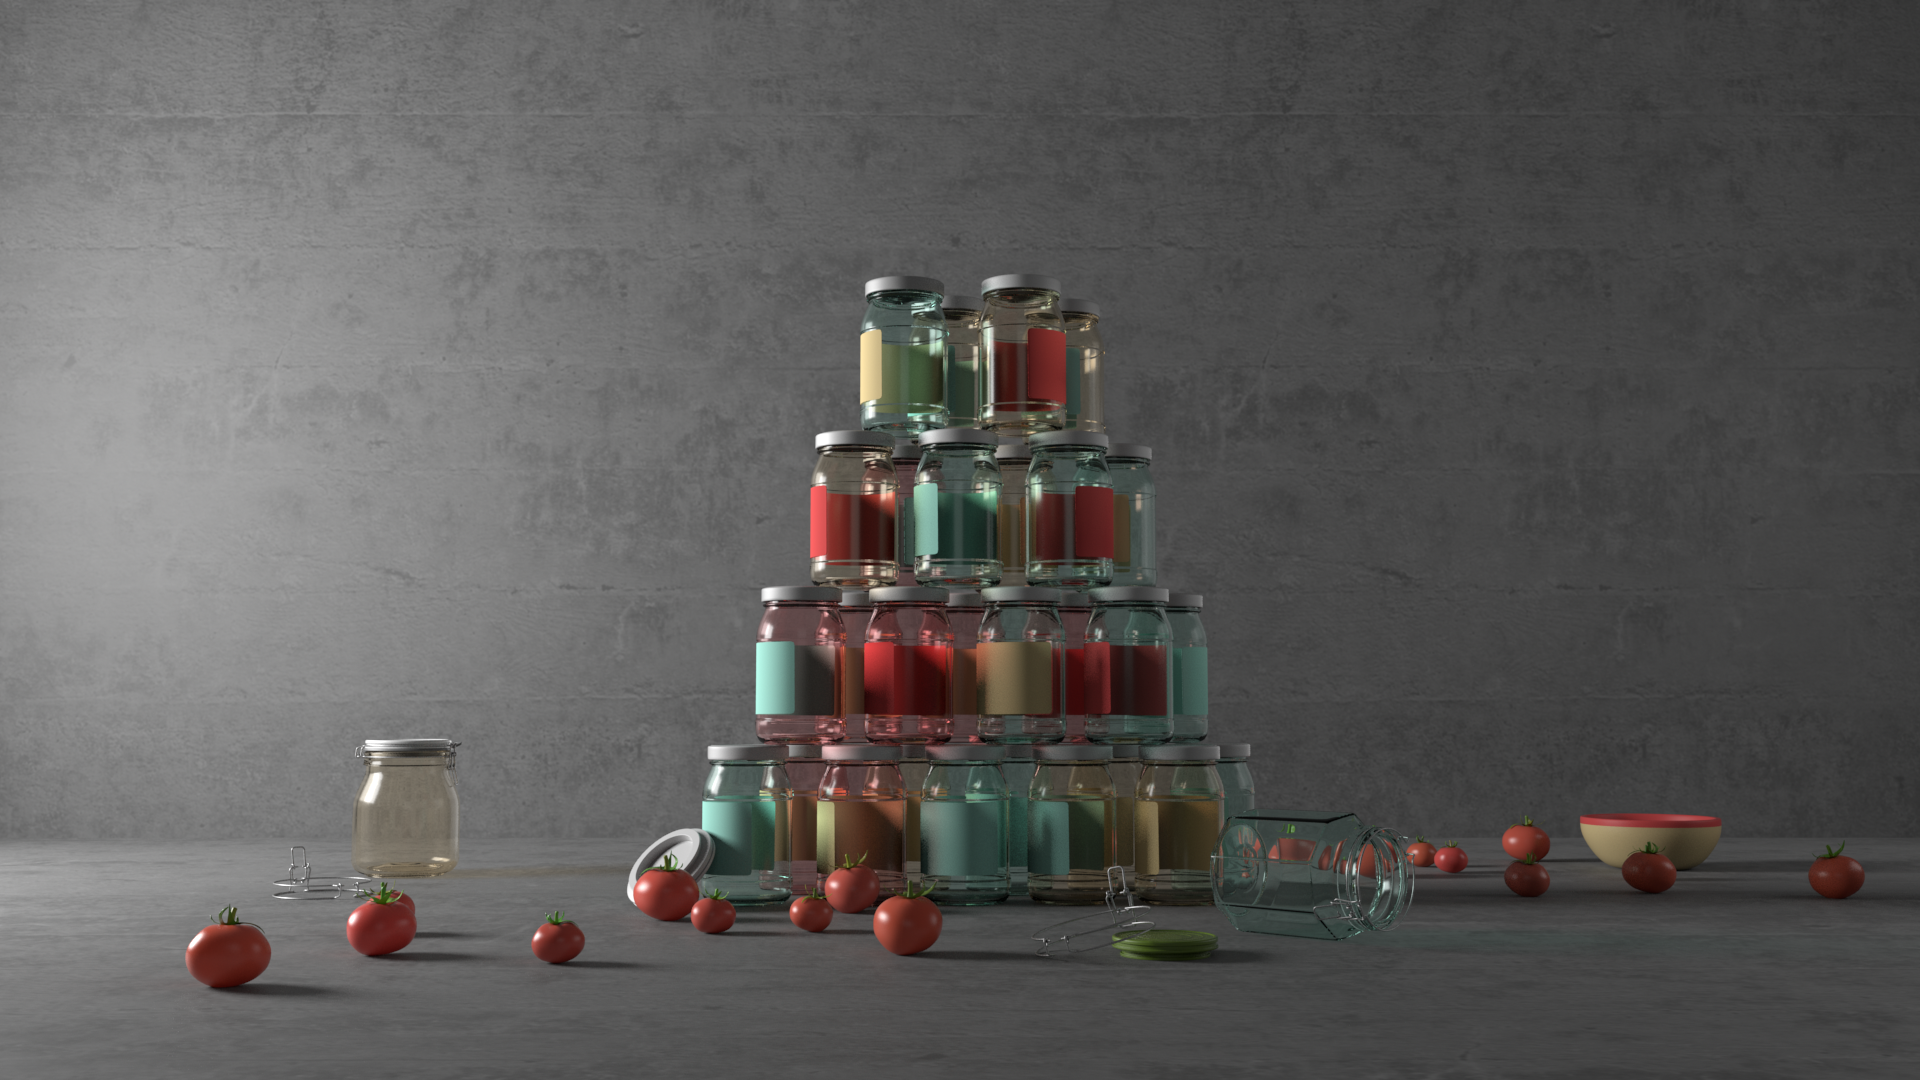 Mastering Arnold Renderer for Cinema 4D